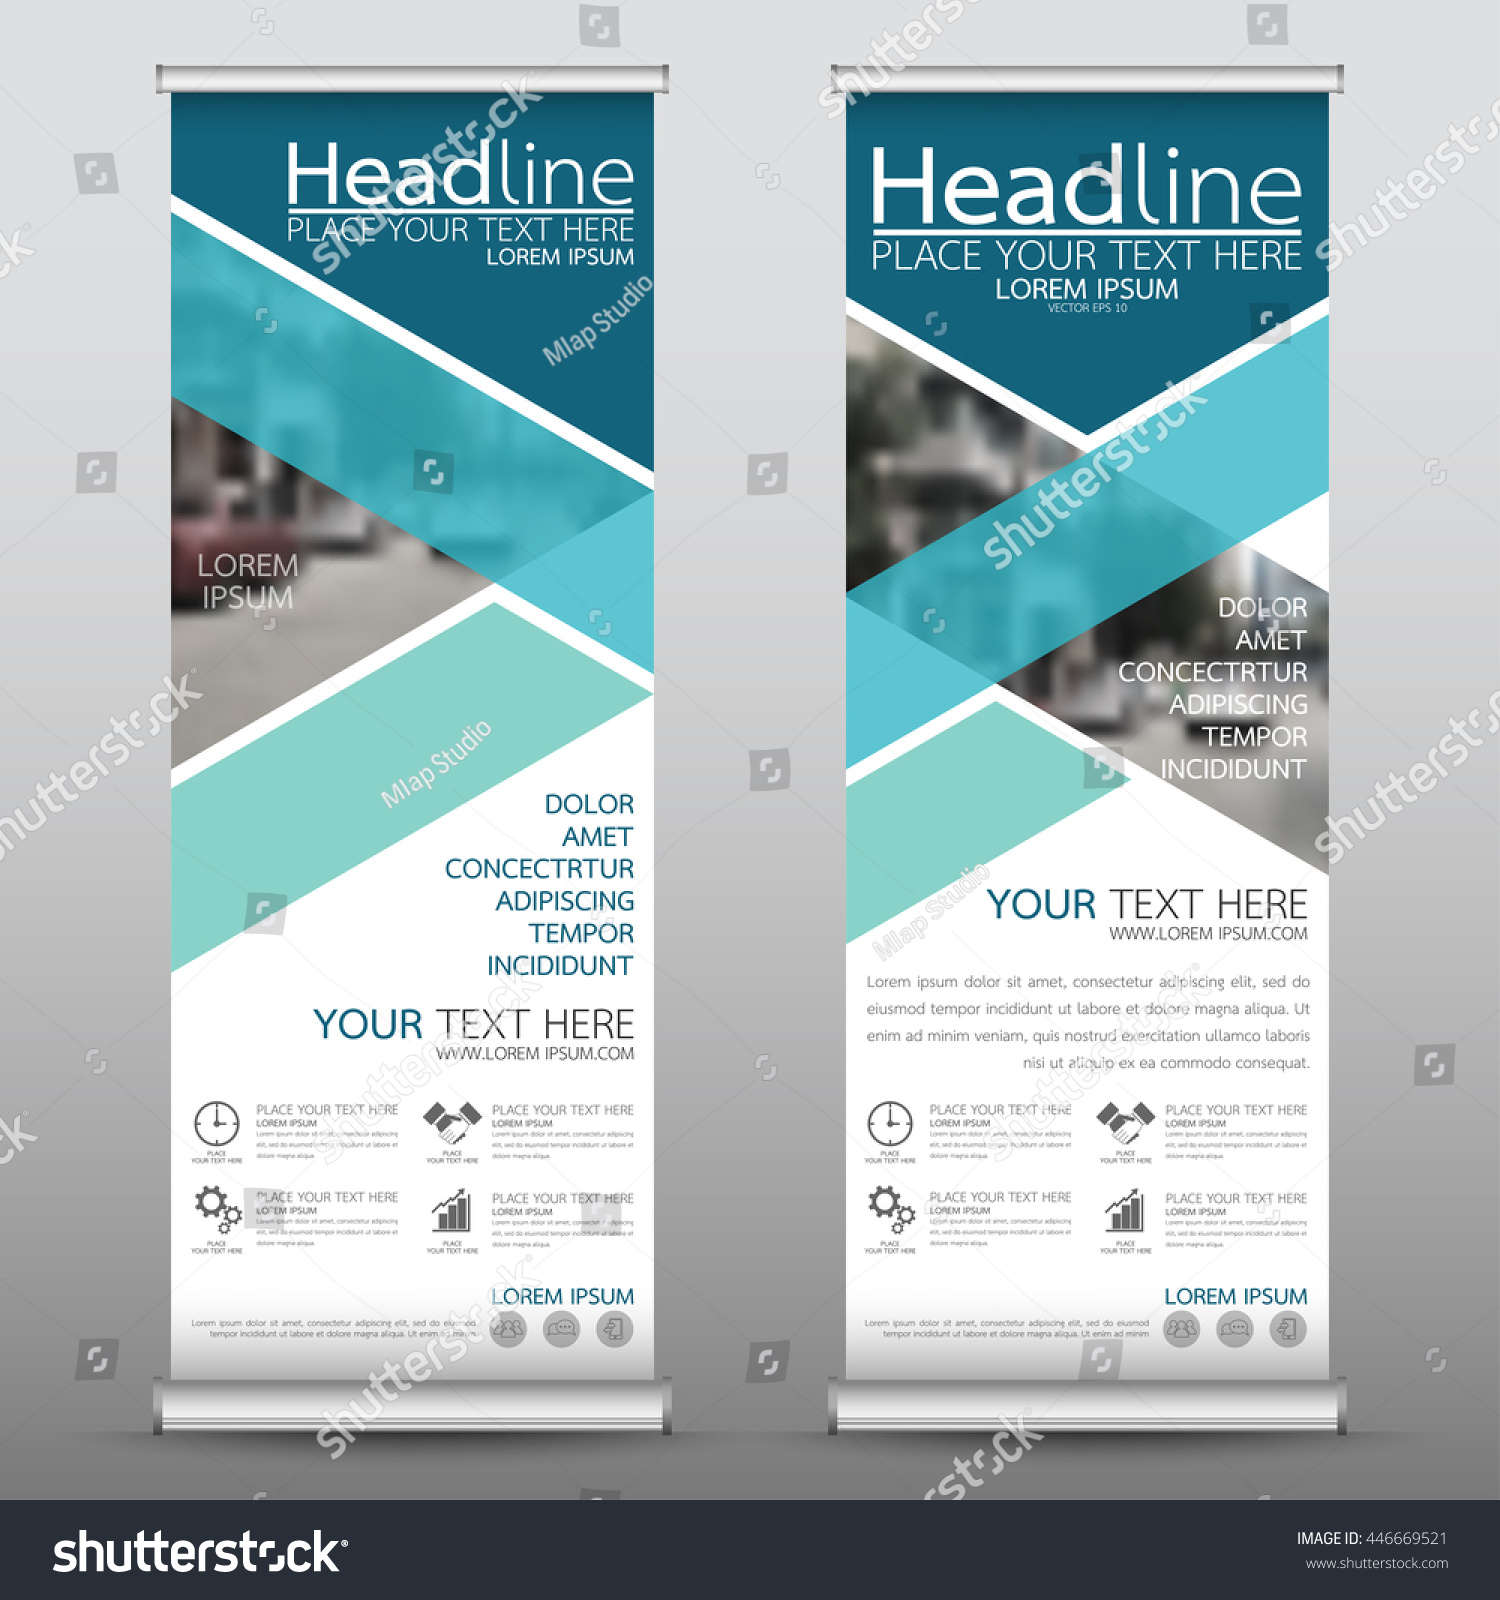 powerpoint poster templates 36x48 images - templates example free, Presentation templates